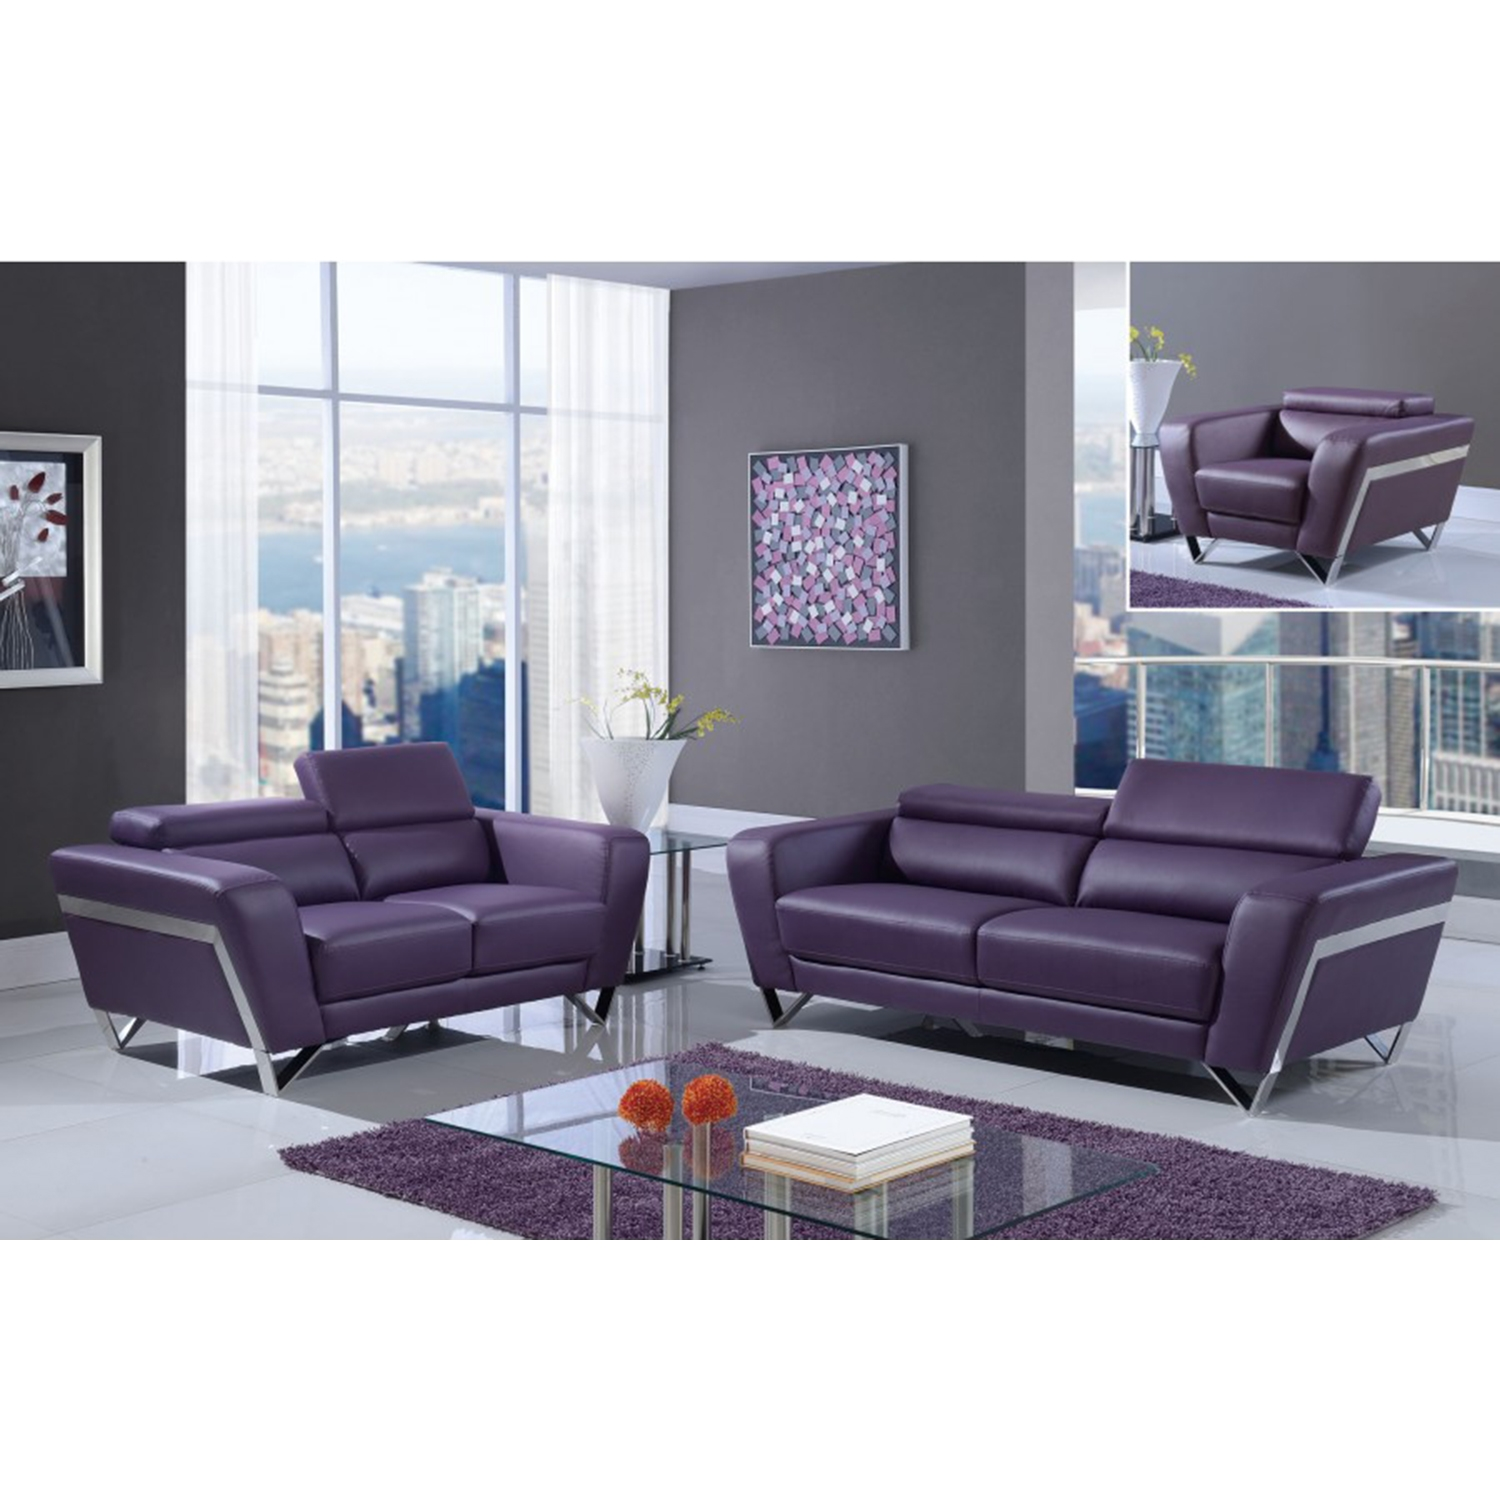 Braden Sofa Set with Headrest - Natalie Purple